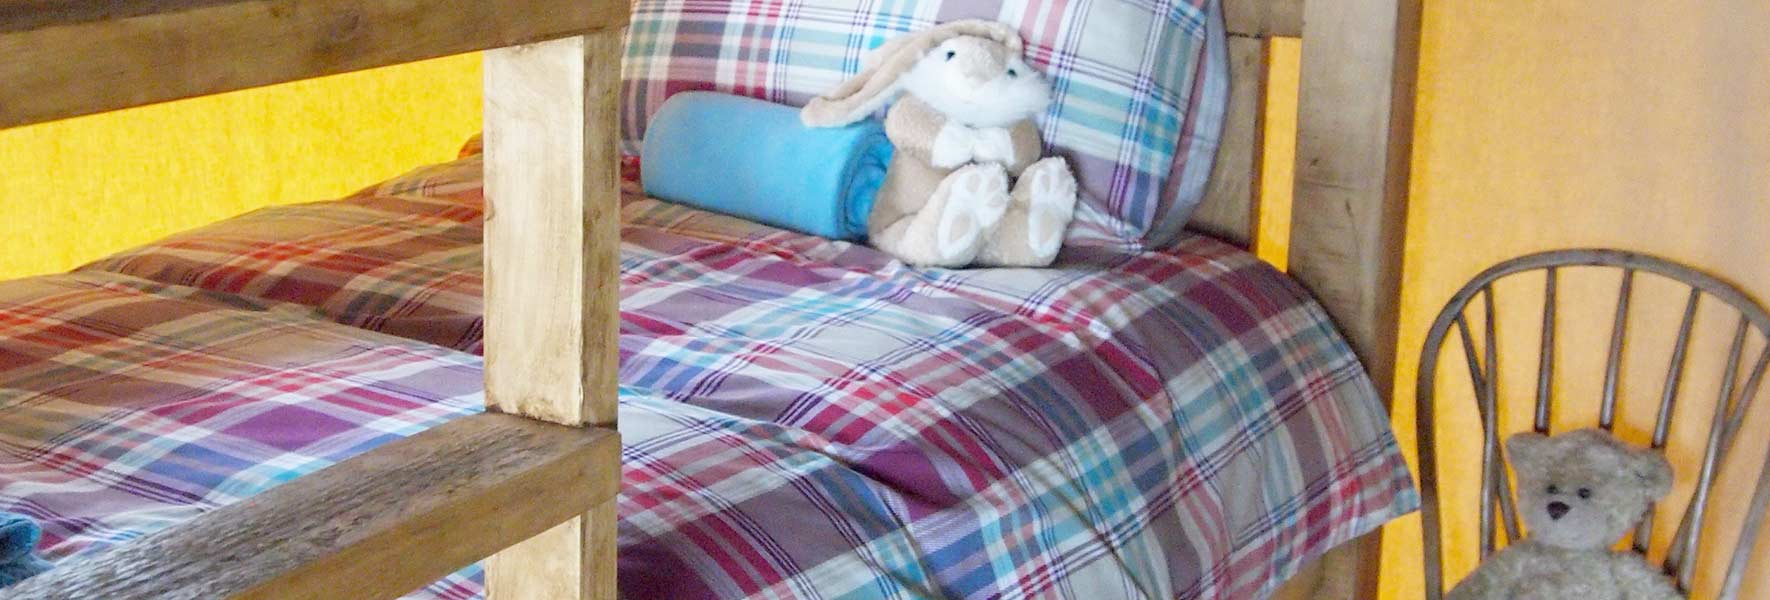 bunk beds at Village Farm Getaway, holidays glamping and luxury camping in East Midlands and Liecestershire